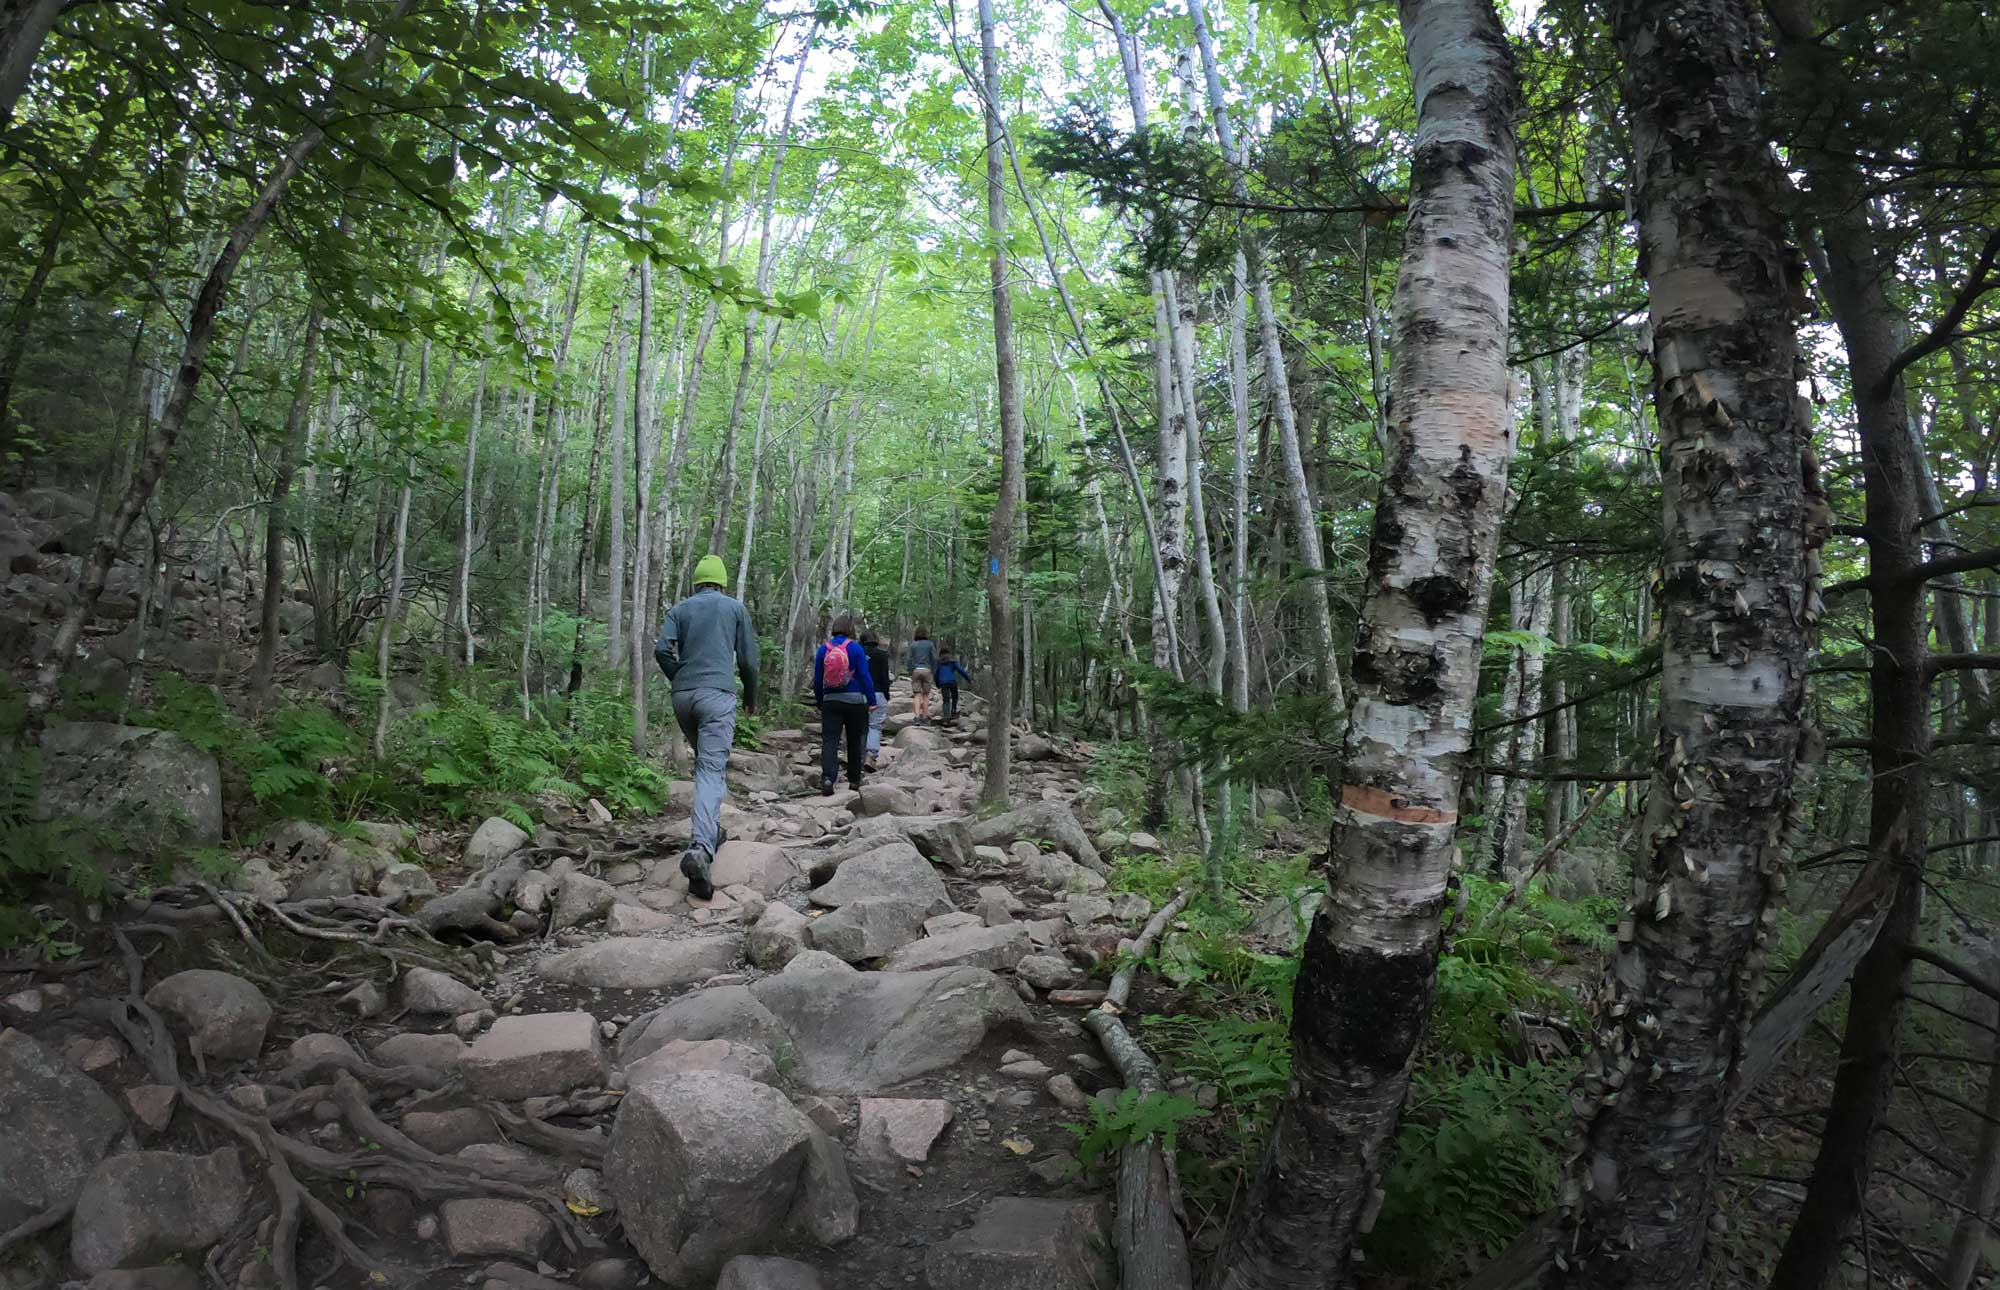 Family hiking on the rubble of the Beehive Trail, Acadia National Park, Maine